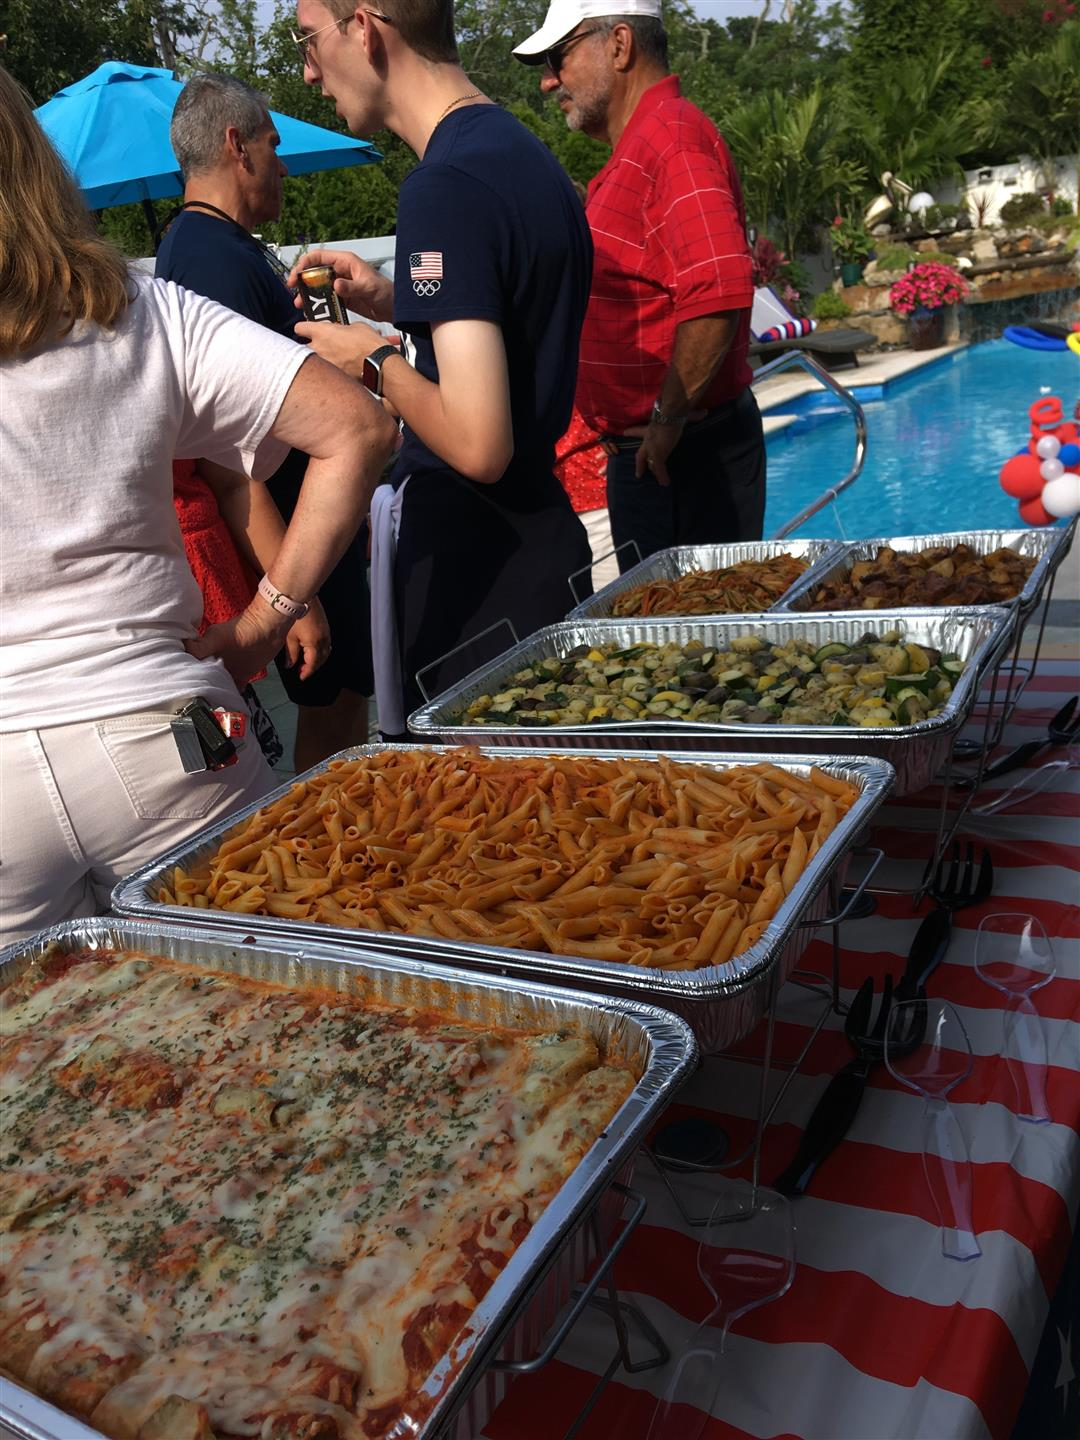 catering dishes for the celebration of Andrew Capobianco, USA silver medalist in diving